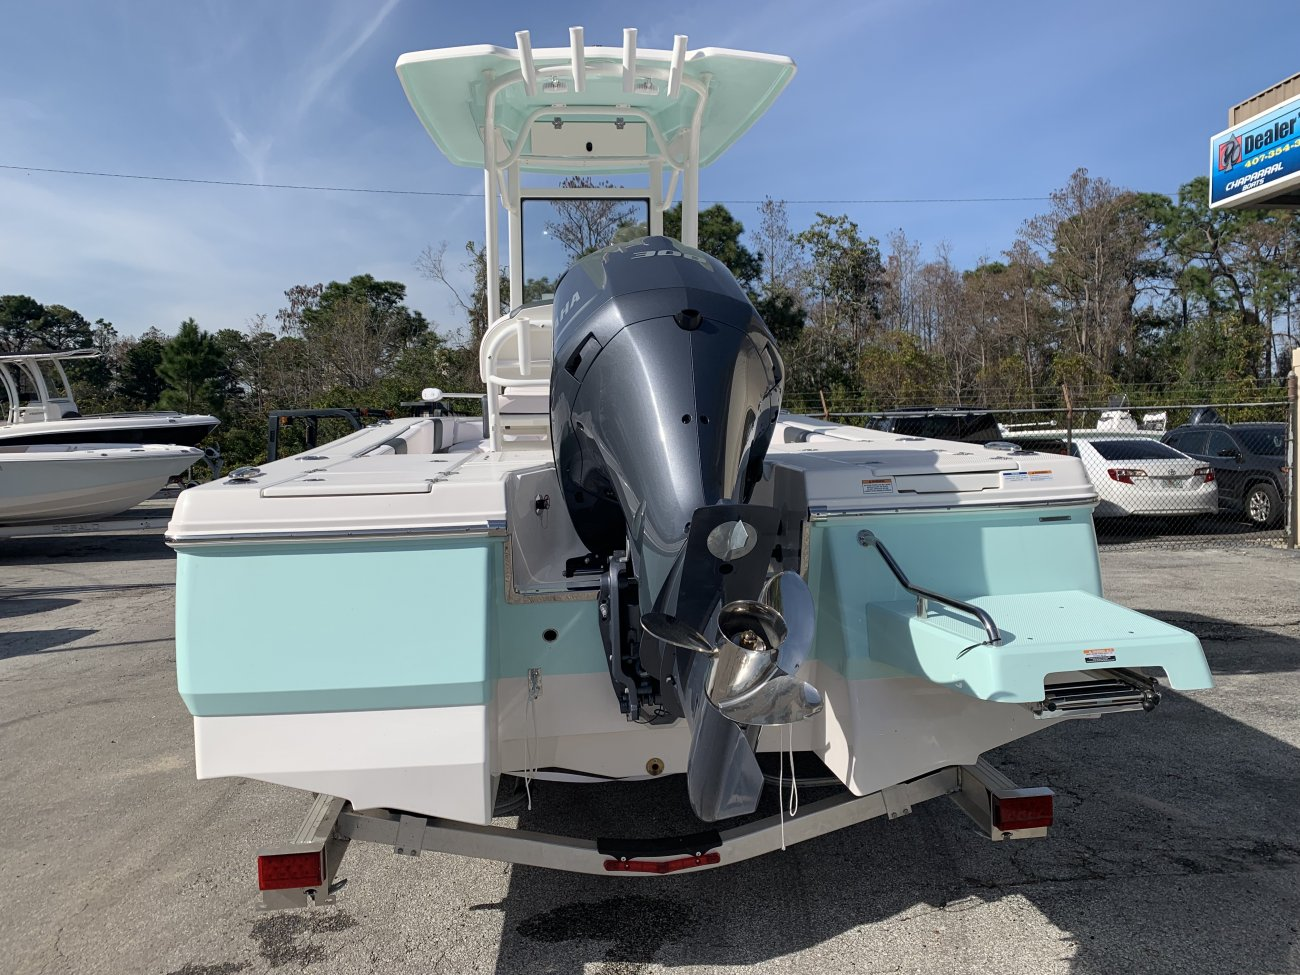 A 246 Cayman Bay Boat is a Power and could be classed as a Bay Boat, Center Console, Freshwater Fishing, High Performance, Saltwater Fishing, Runabout,  or, just an overall Great Boat!